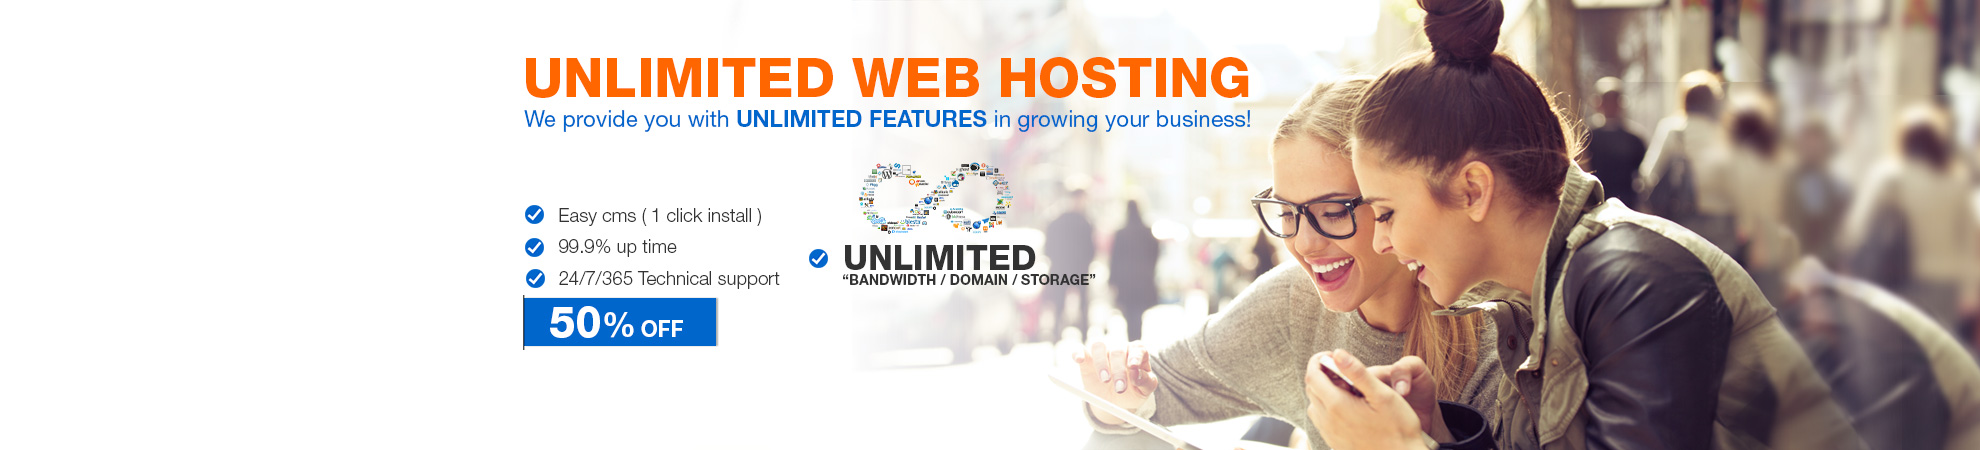 Small Business Web Hosting Malaysia